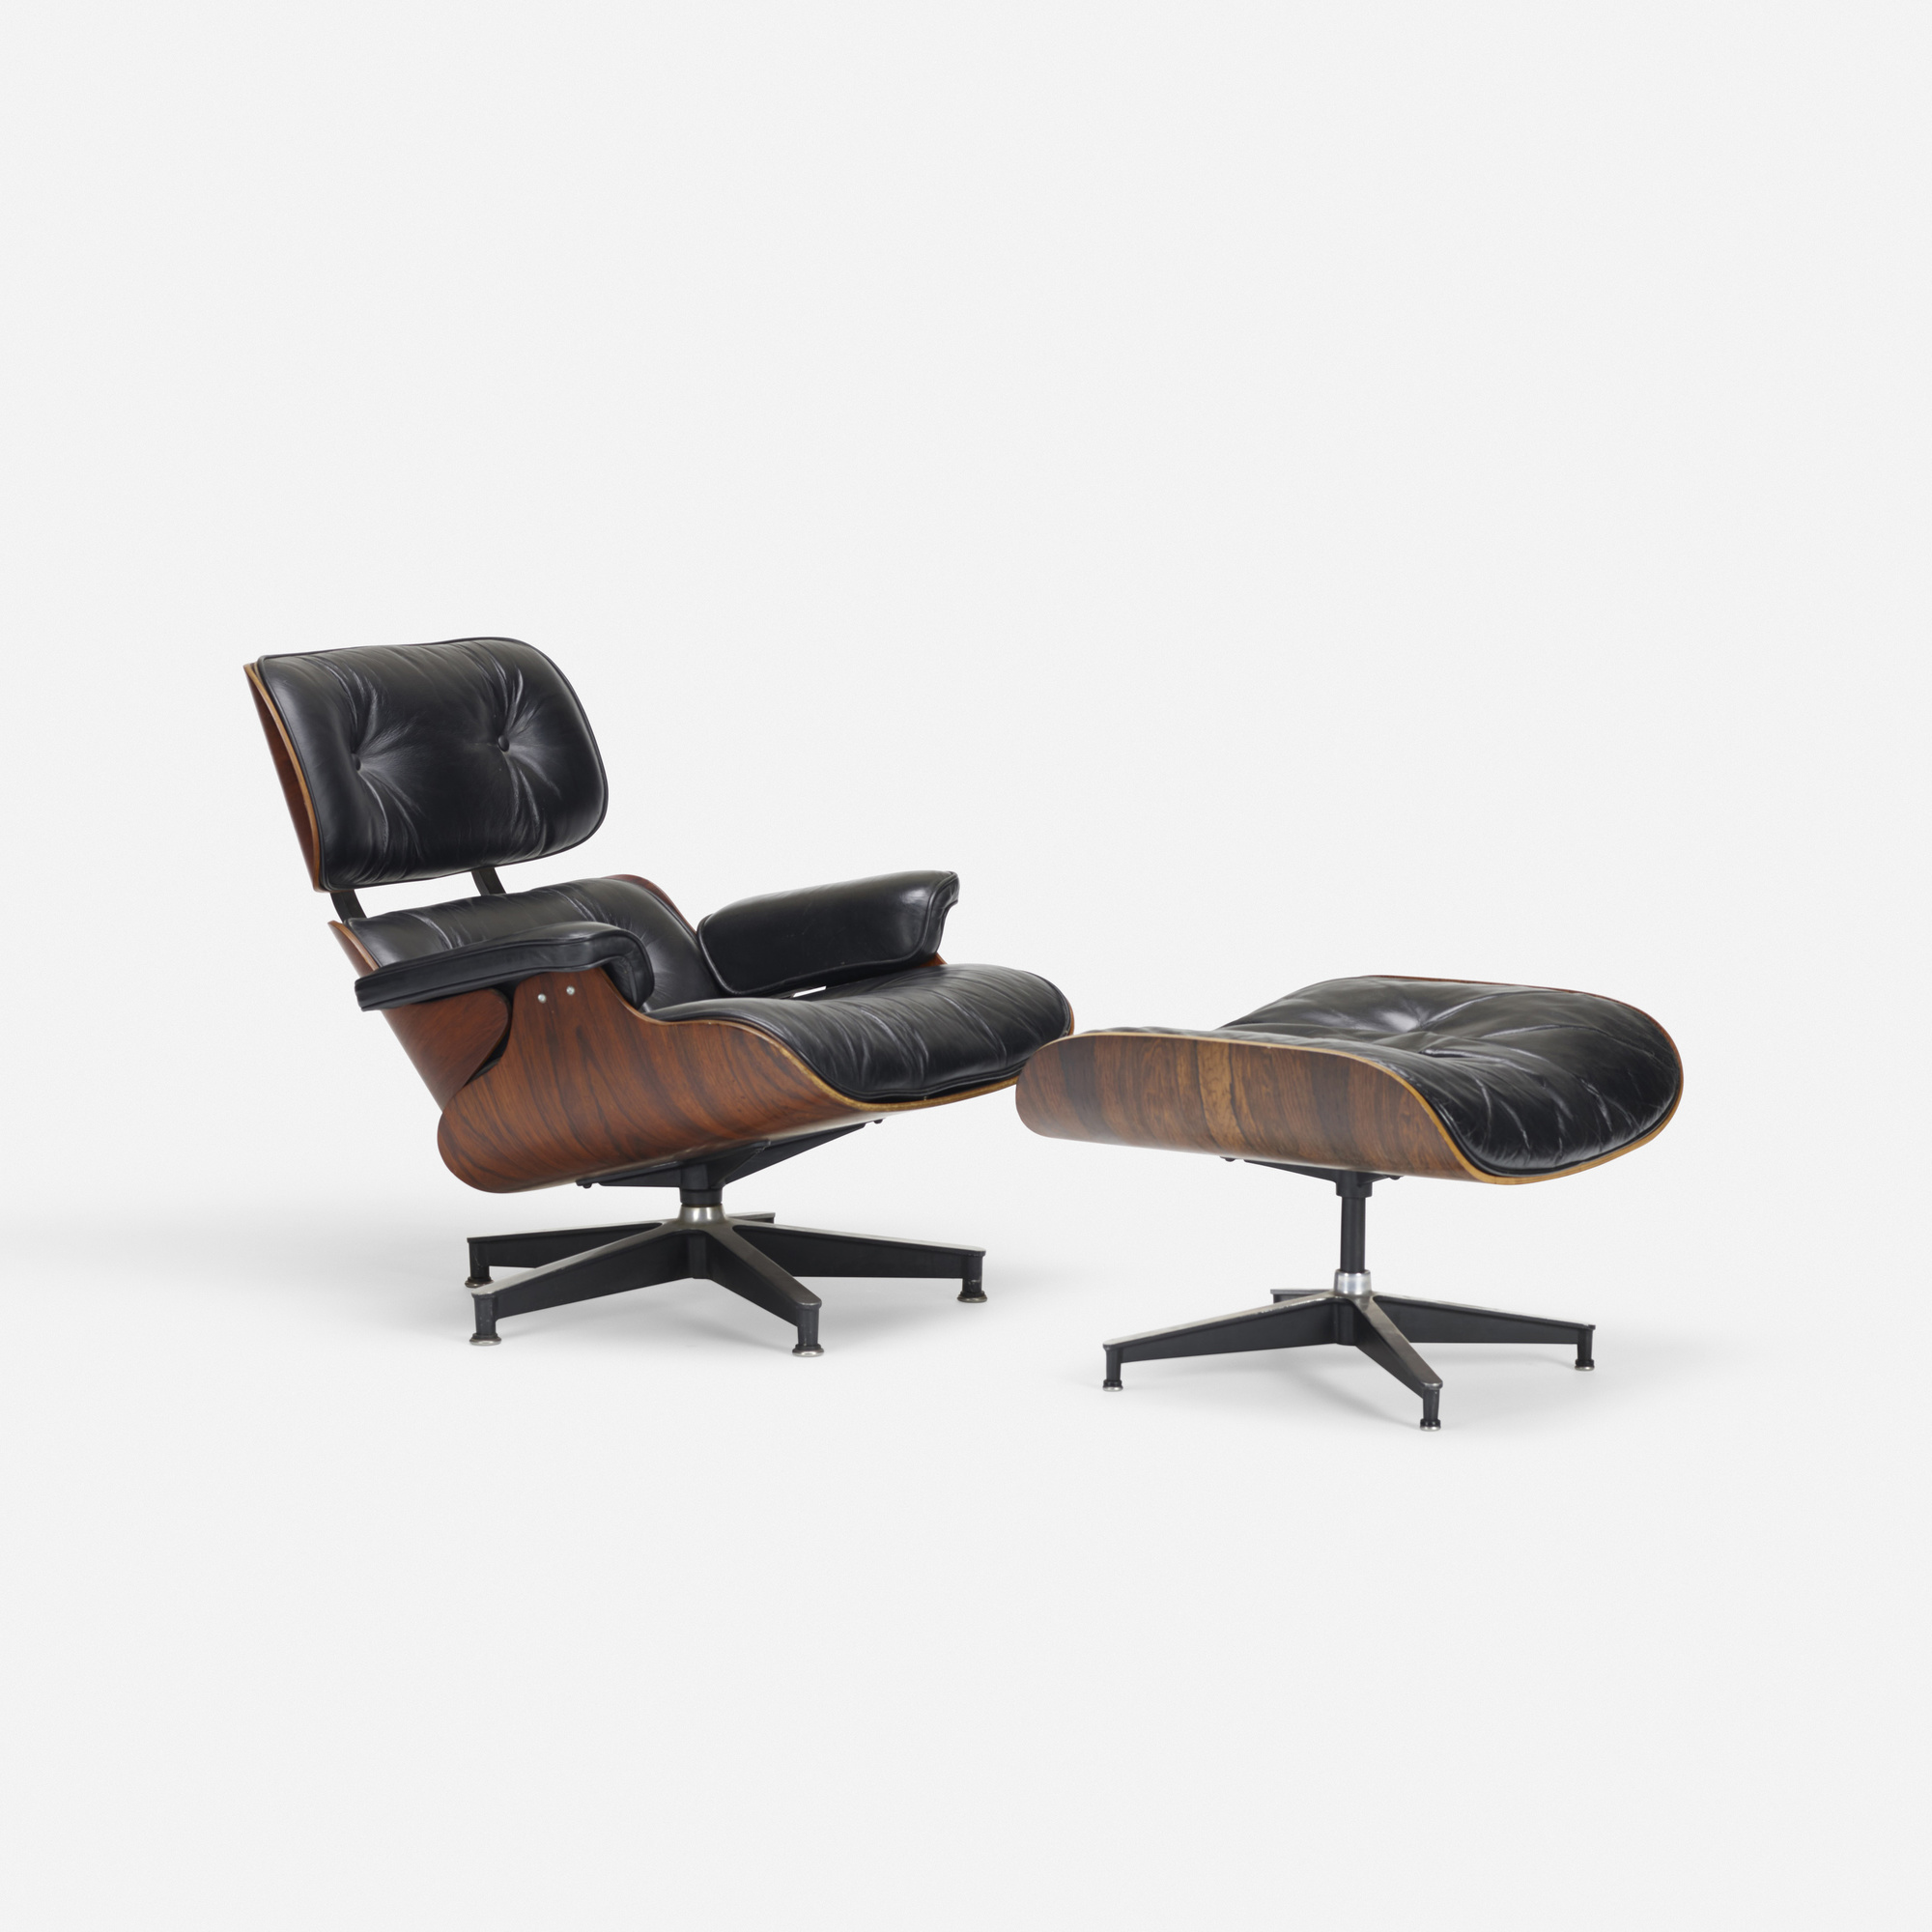 251: Charles and Ray Eames / 670 lounge chair and 671 ottoman (2 of 2)